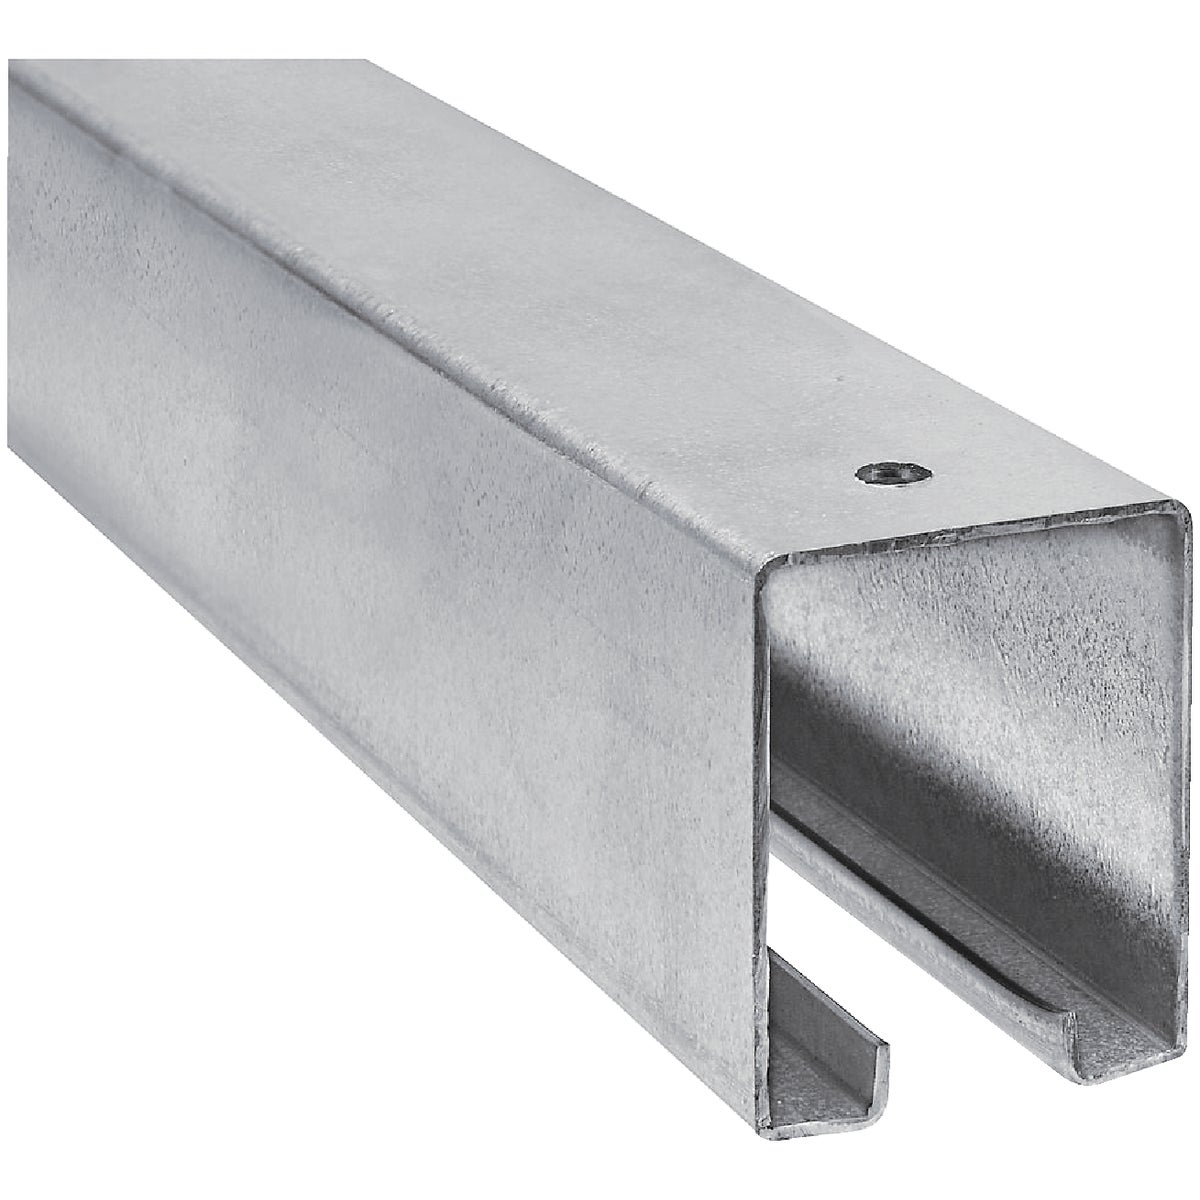 5116 8' GLV DOOR RAIL - N105726 by National Mfg Co